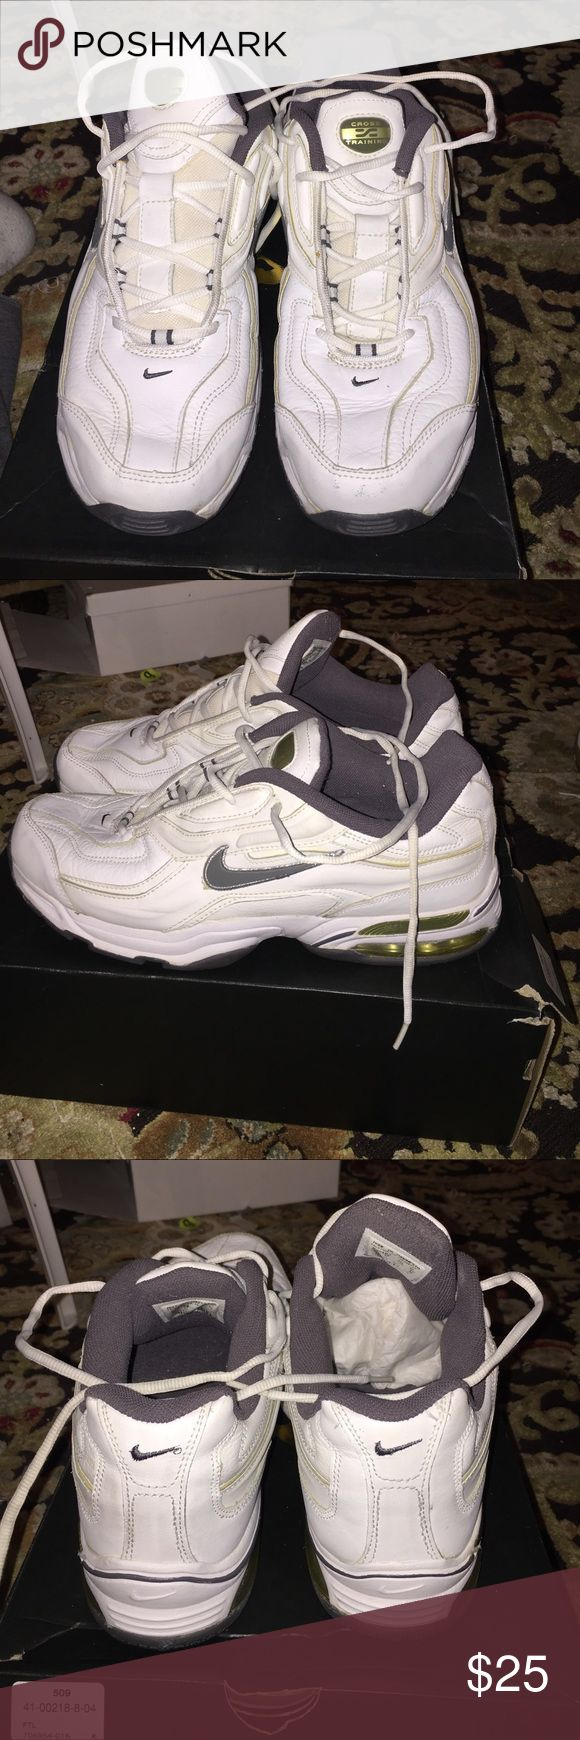 Nike cross training Nike cross training inside and out is clean over all is good condition Nike Shoes Sneakers